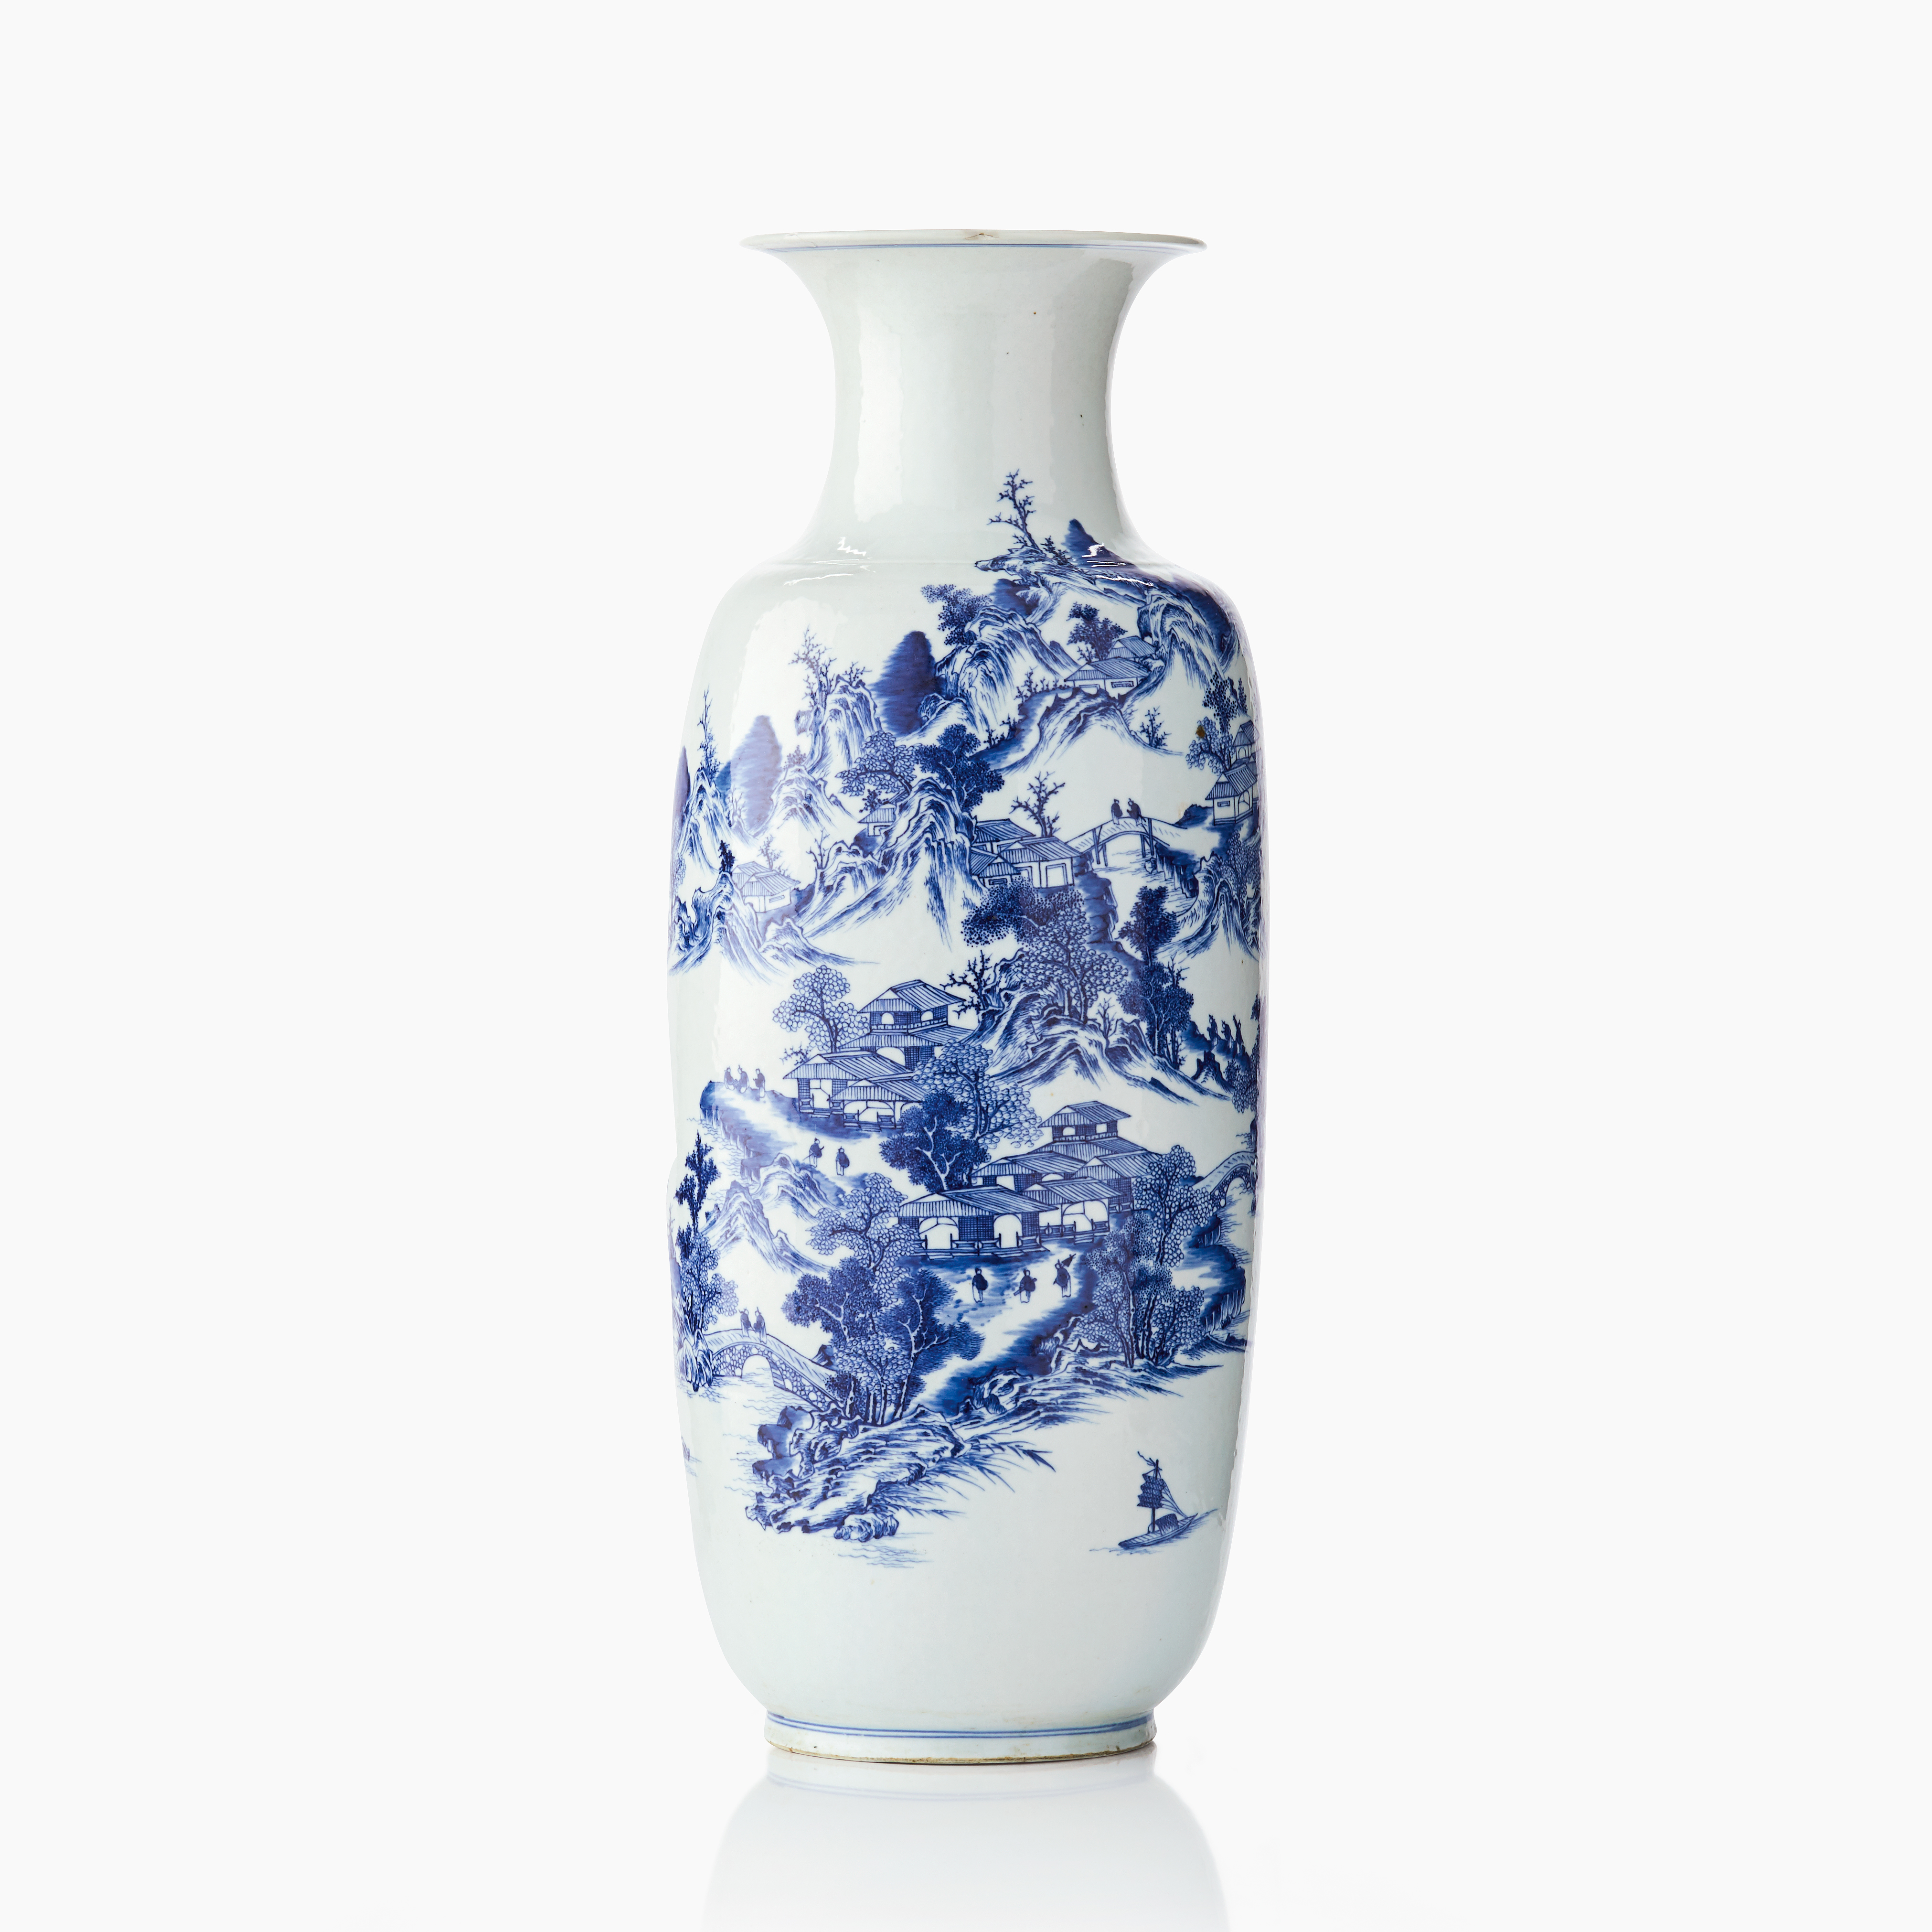 1118 An Imposing Chinese Blue And White Vase Important Sale 13 15 June 2018